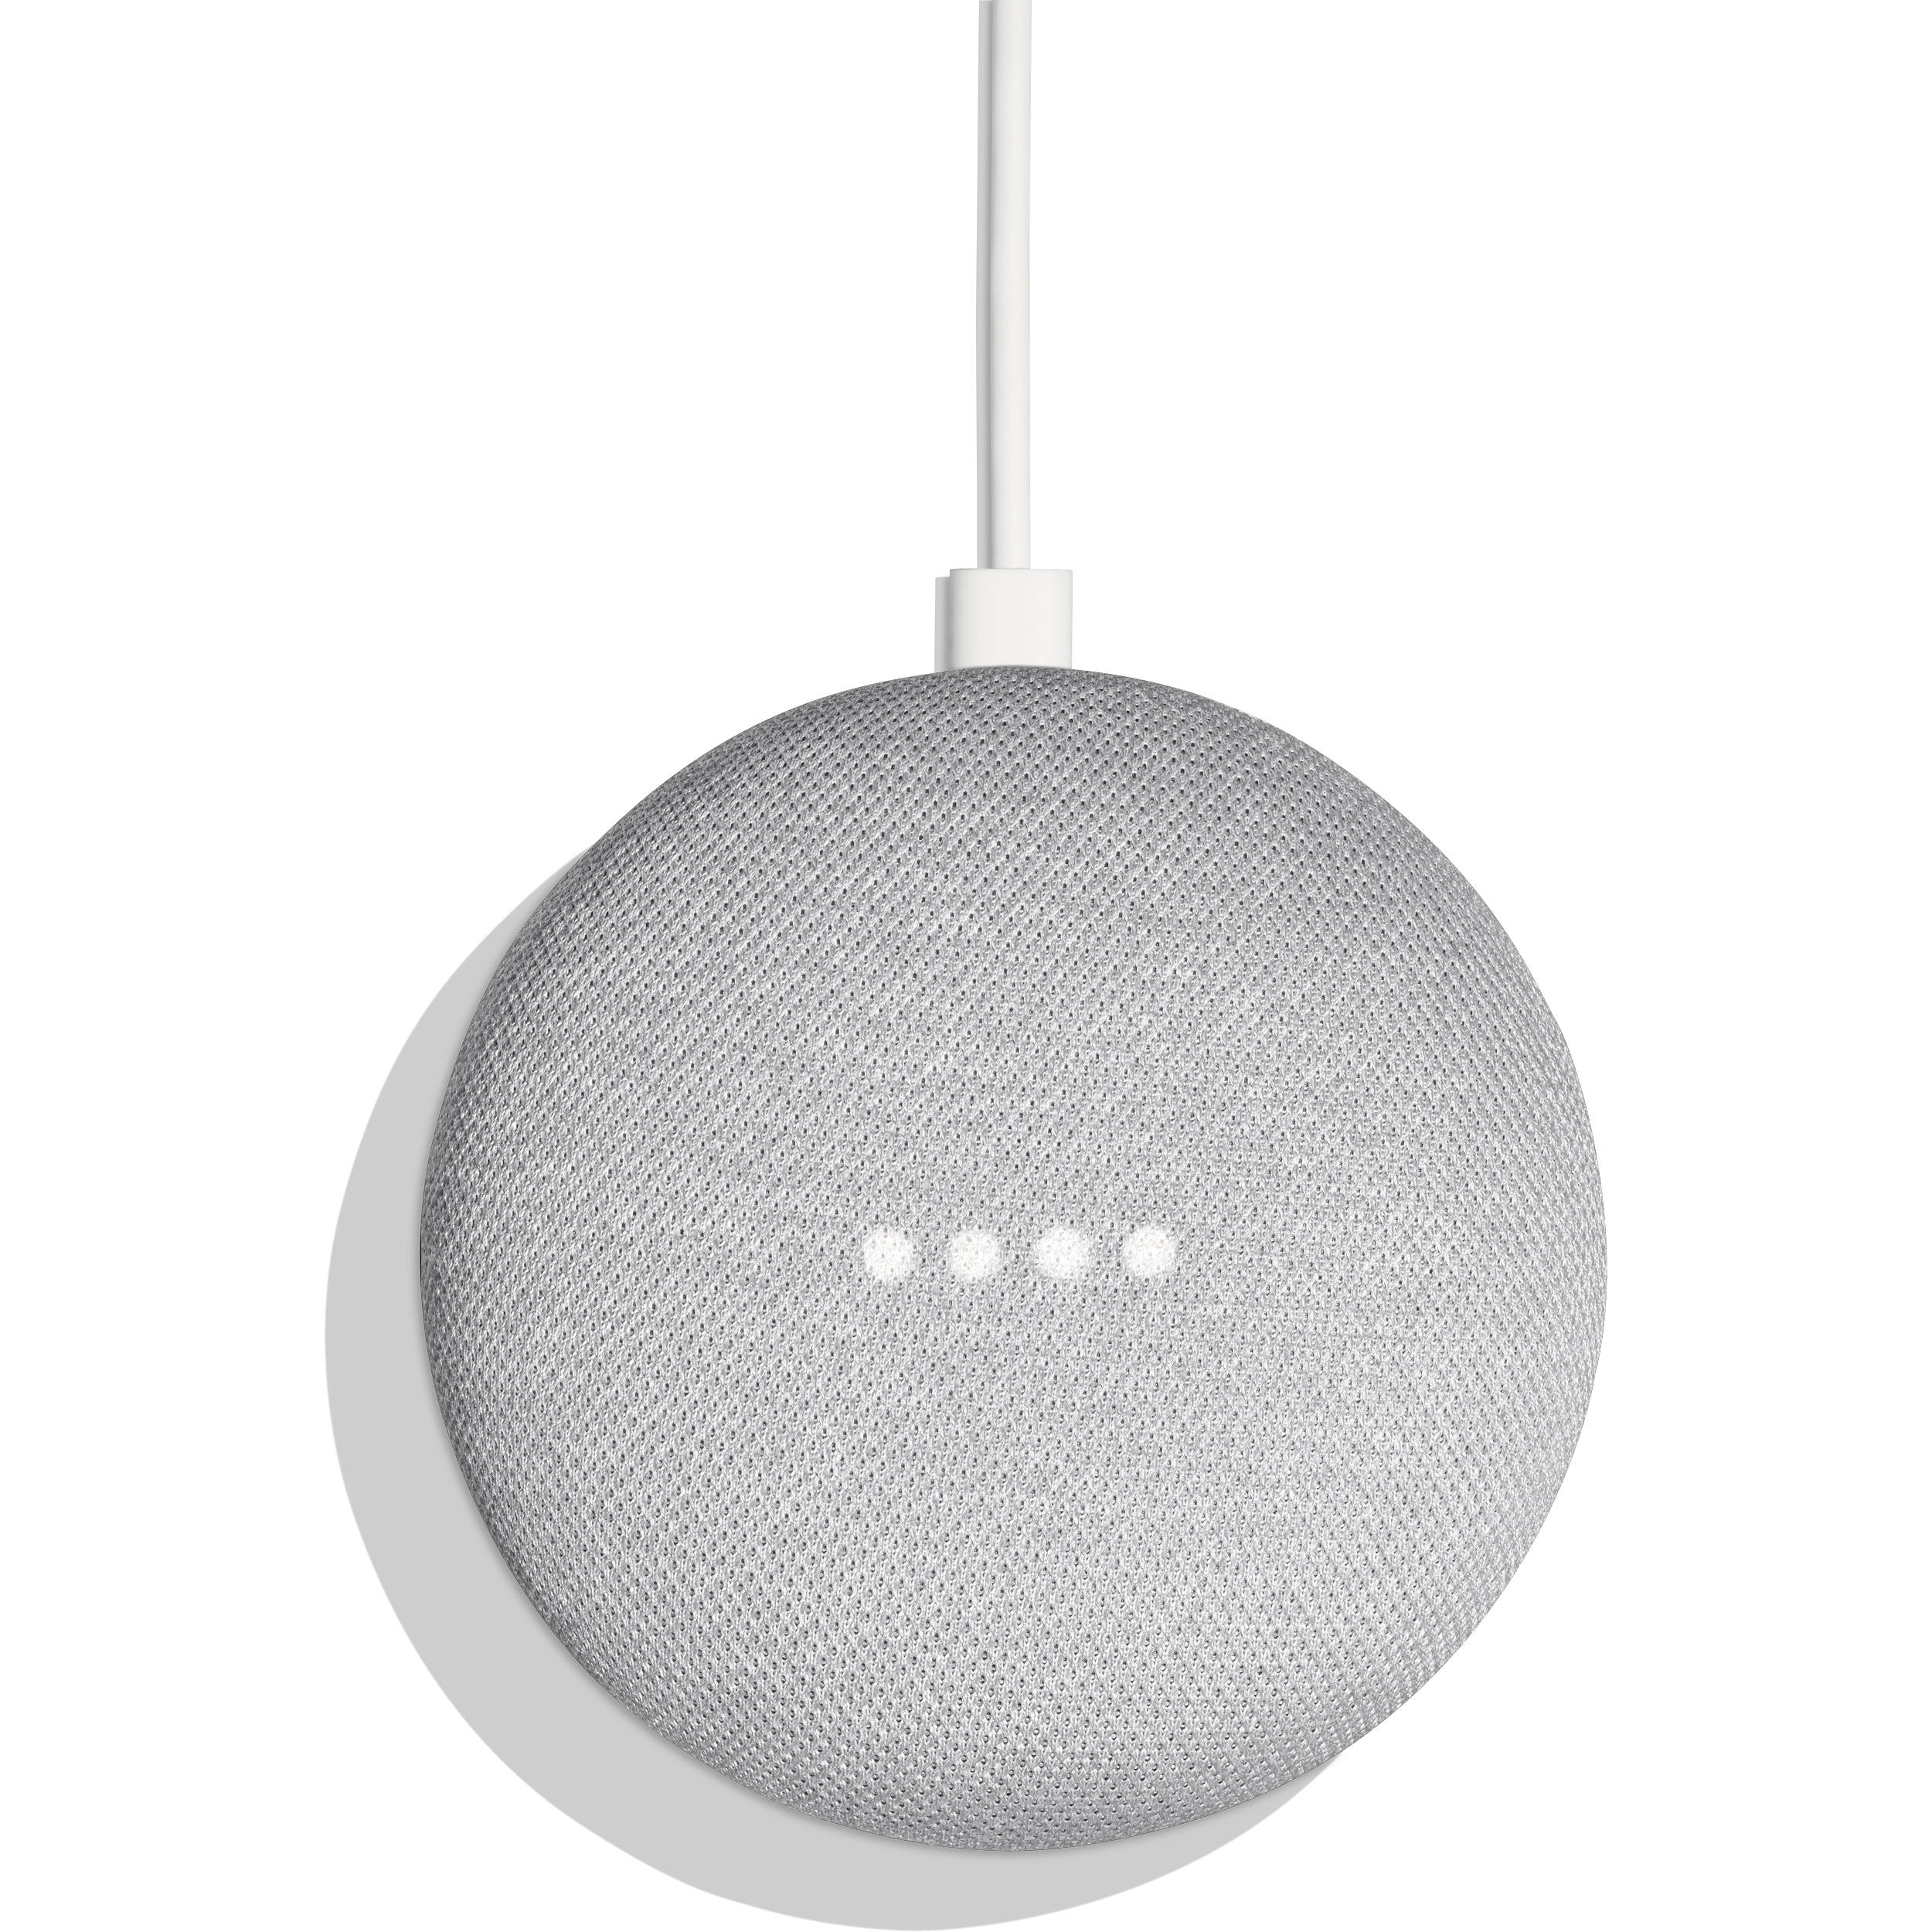 Google home mini chalk ga00210 us b h photo video for Google home mini